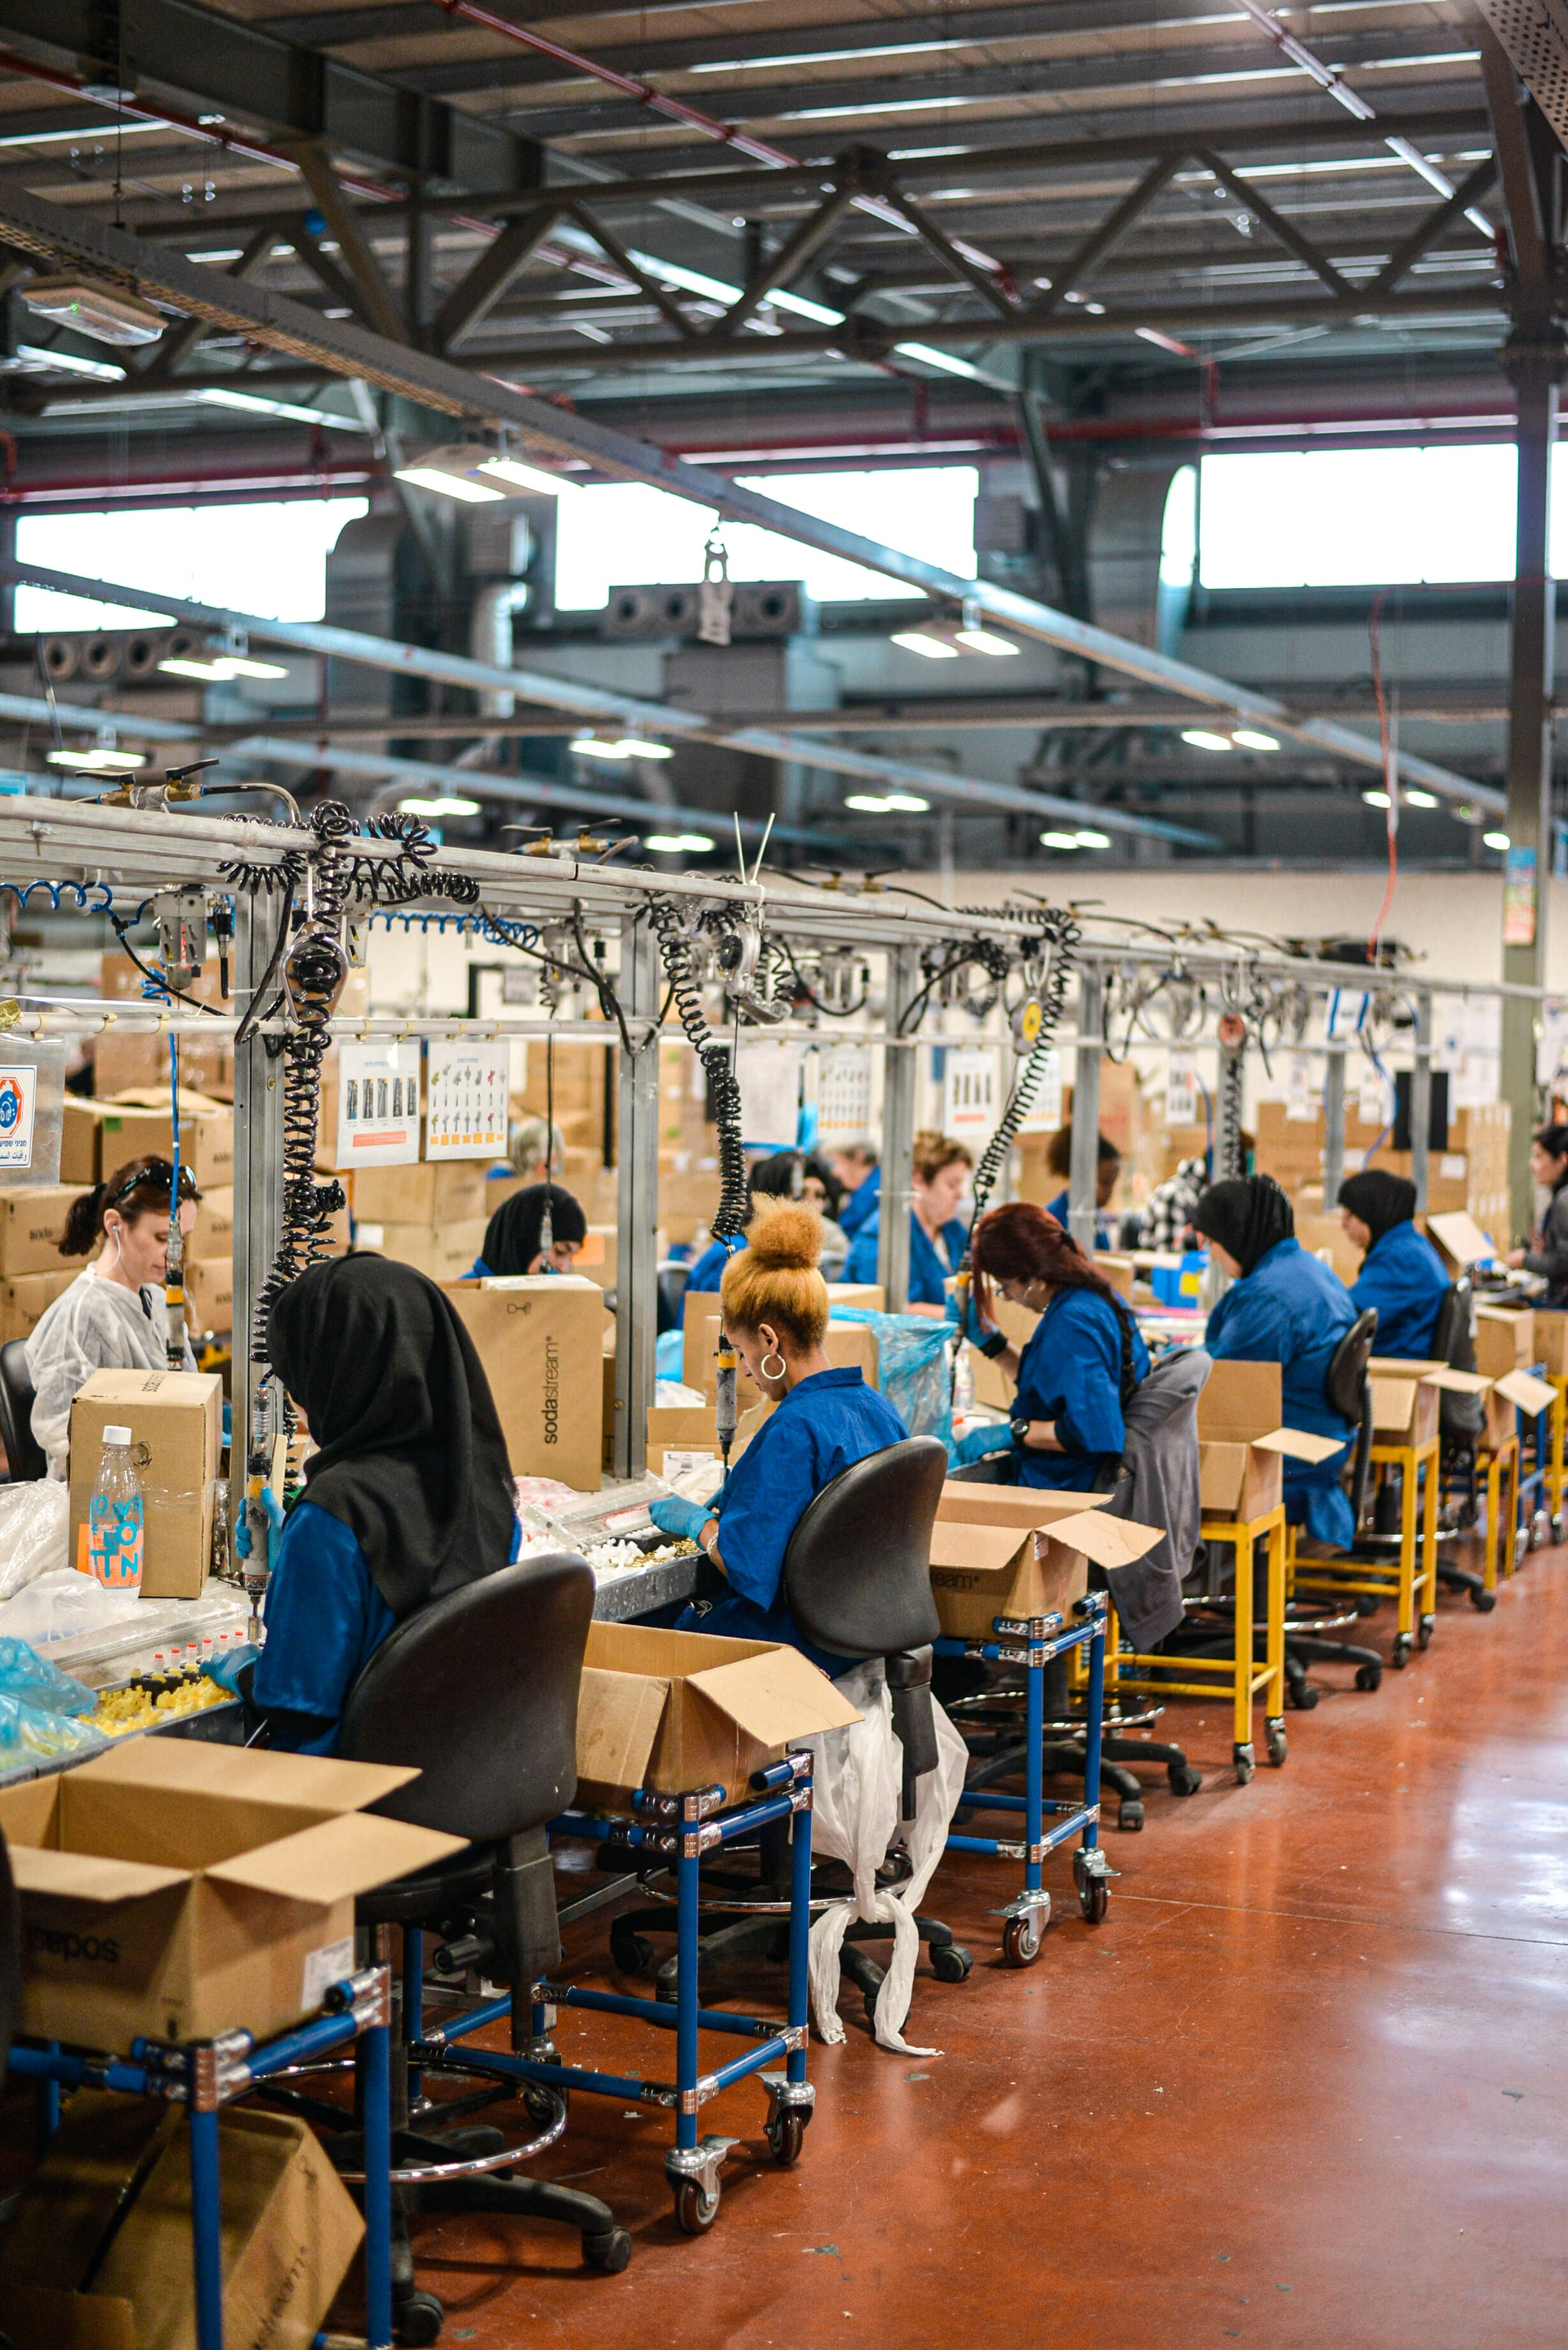 People working in a production line